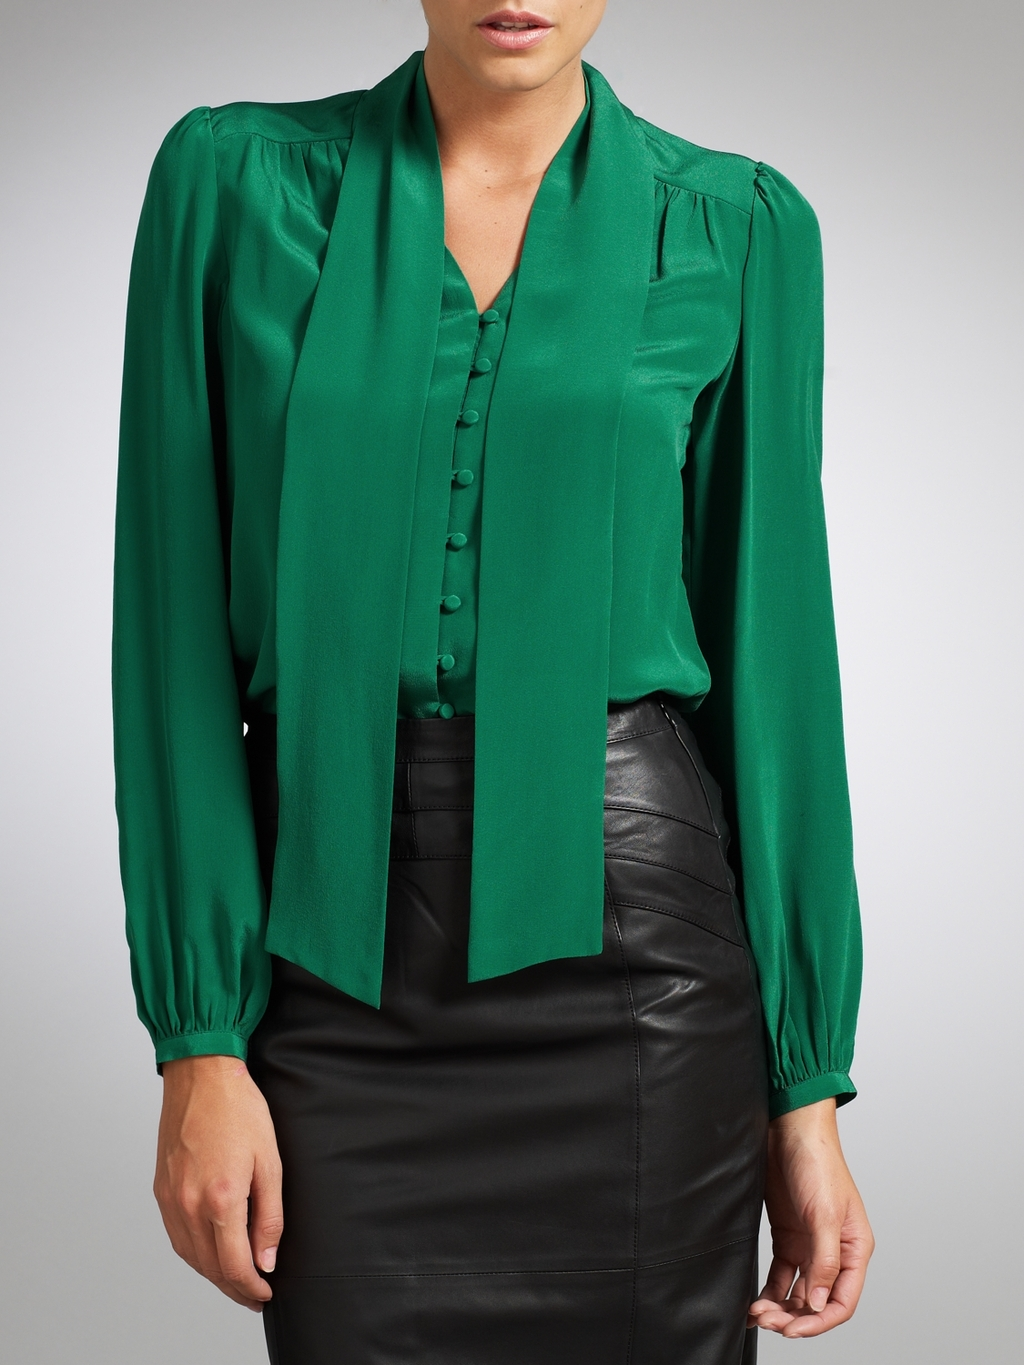 Emerald Green Blouse With Tie - Long Blouse With Pants